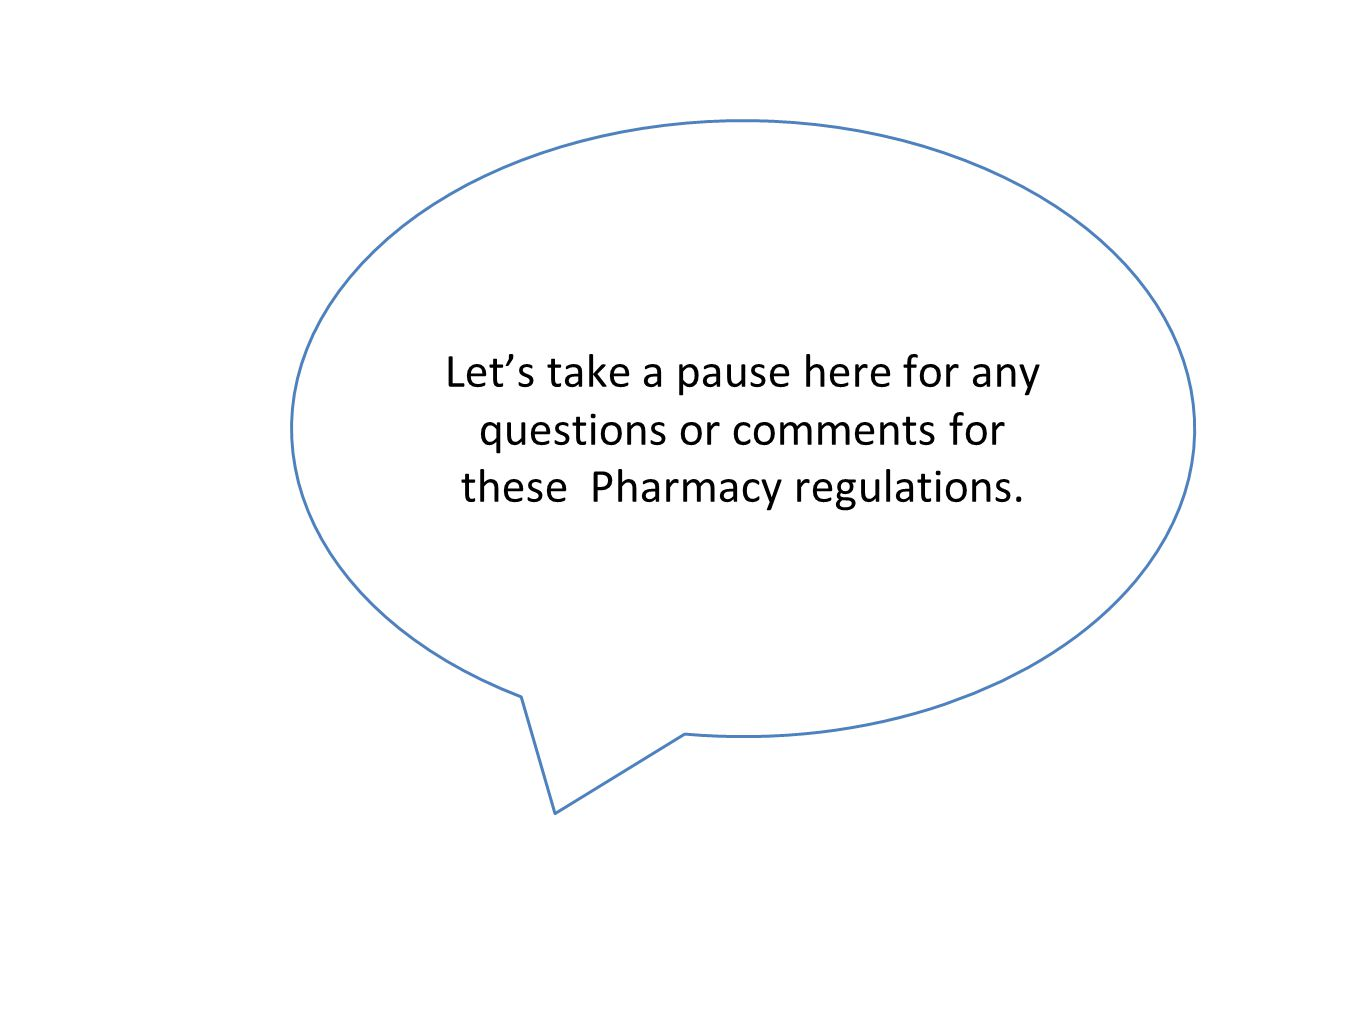 Let's take a pause here for any questions or comments for these Pharmacy regulations.